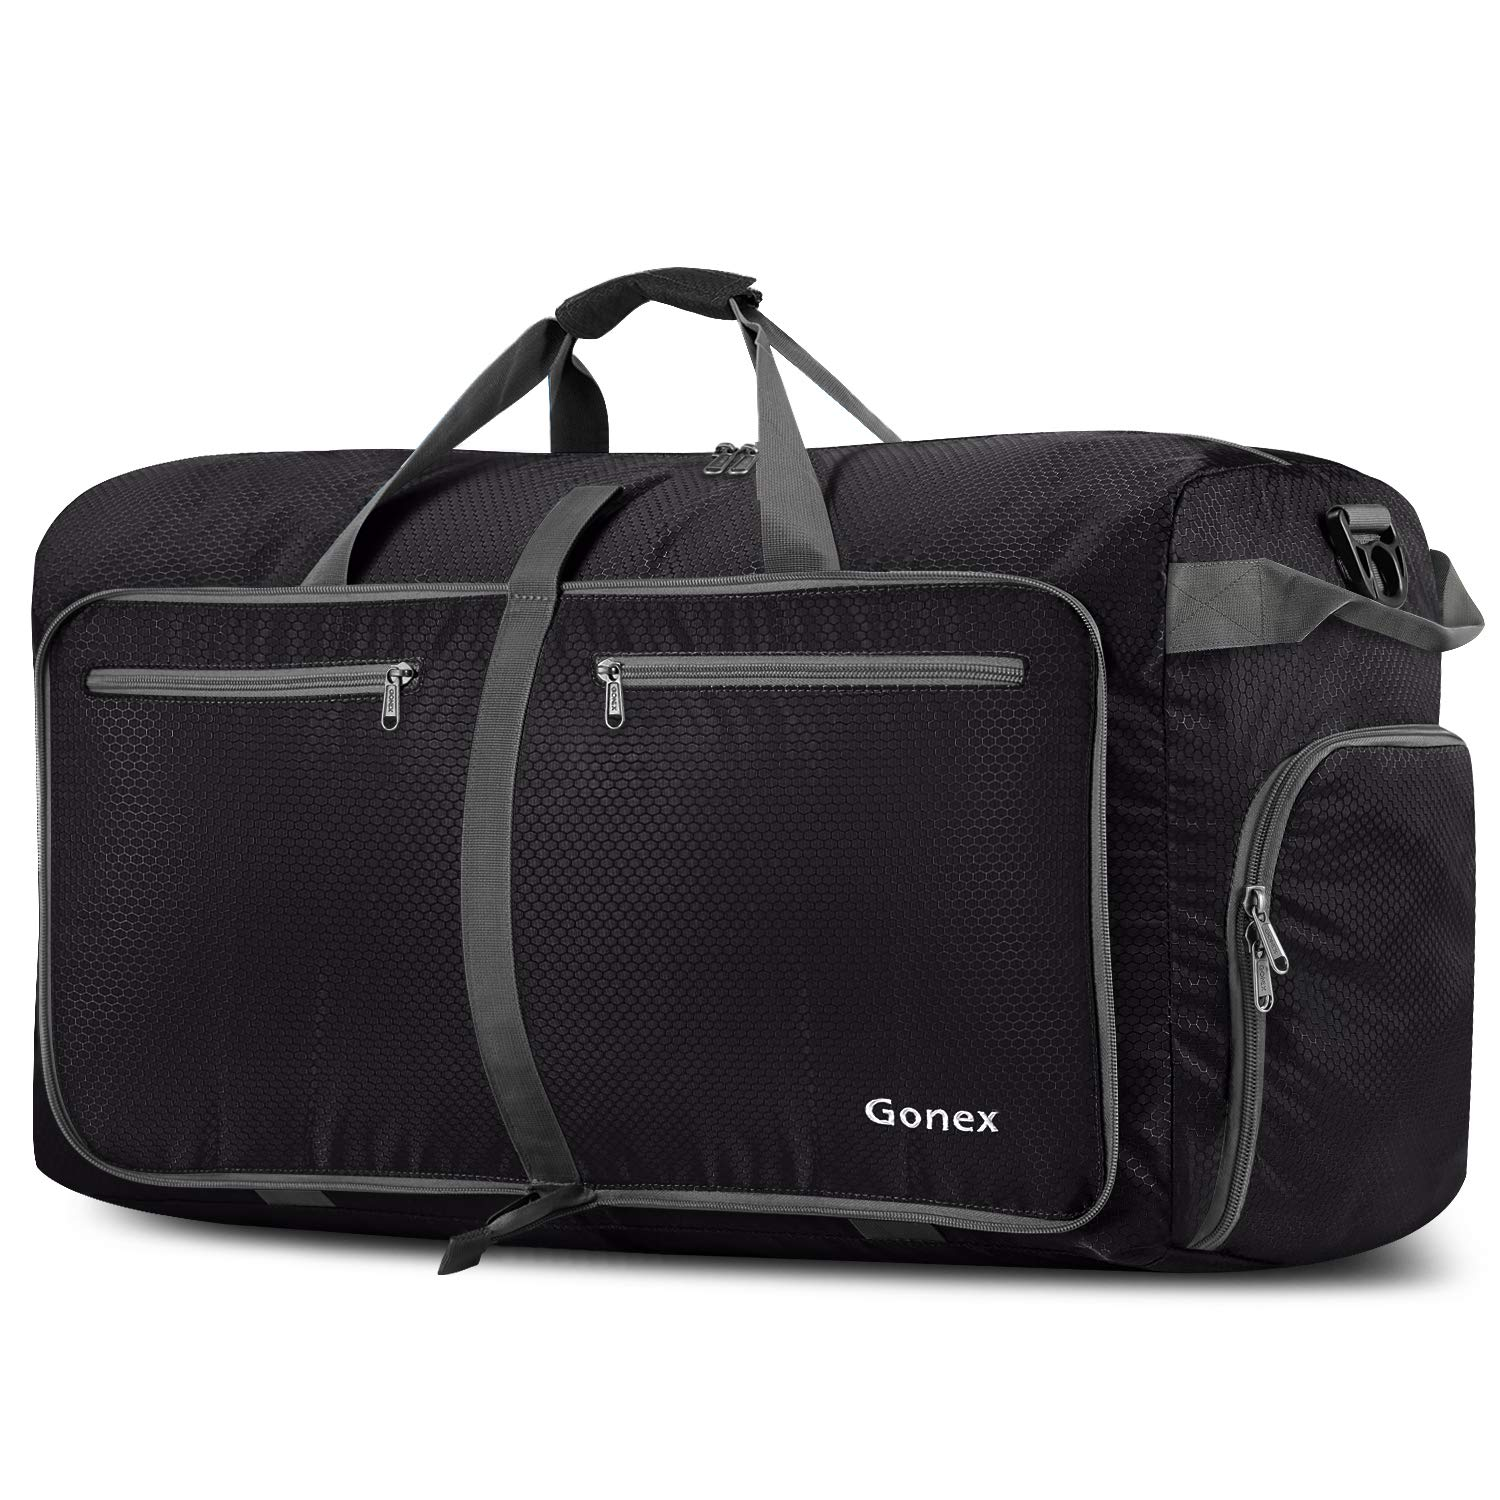 Gonex Unisex-Adult 100L Travel Duffel Bag,